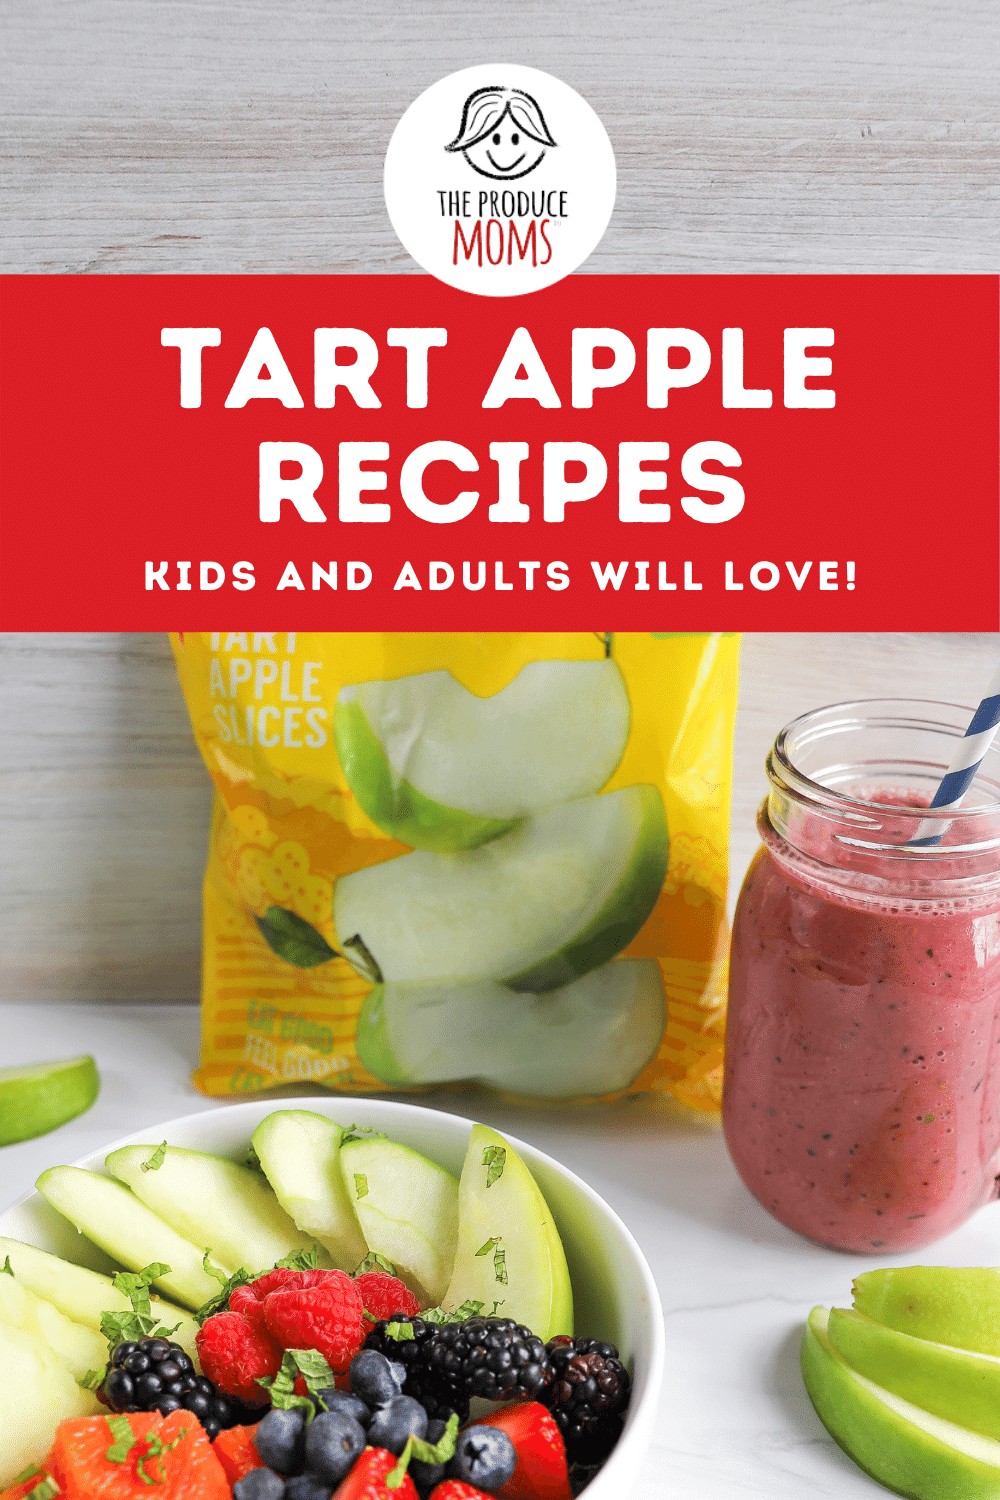 Tart Apple Recipes Kids And Adults Will Love